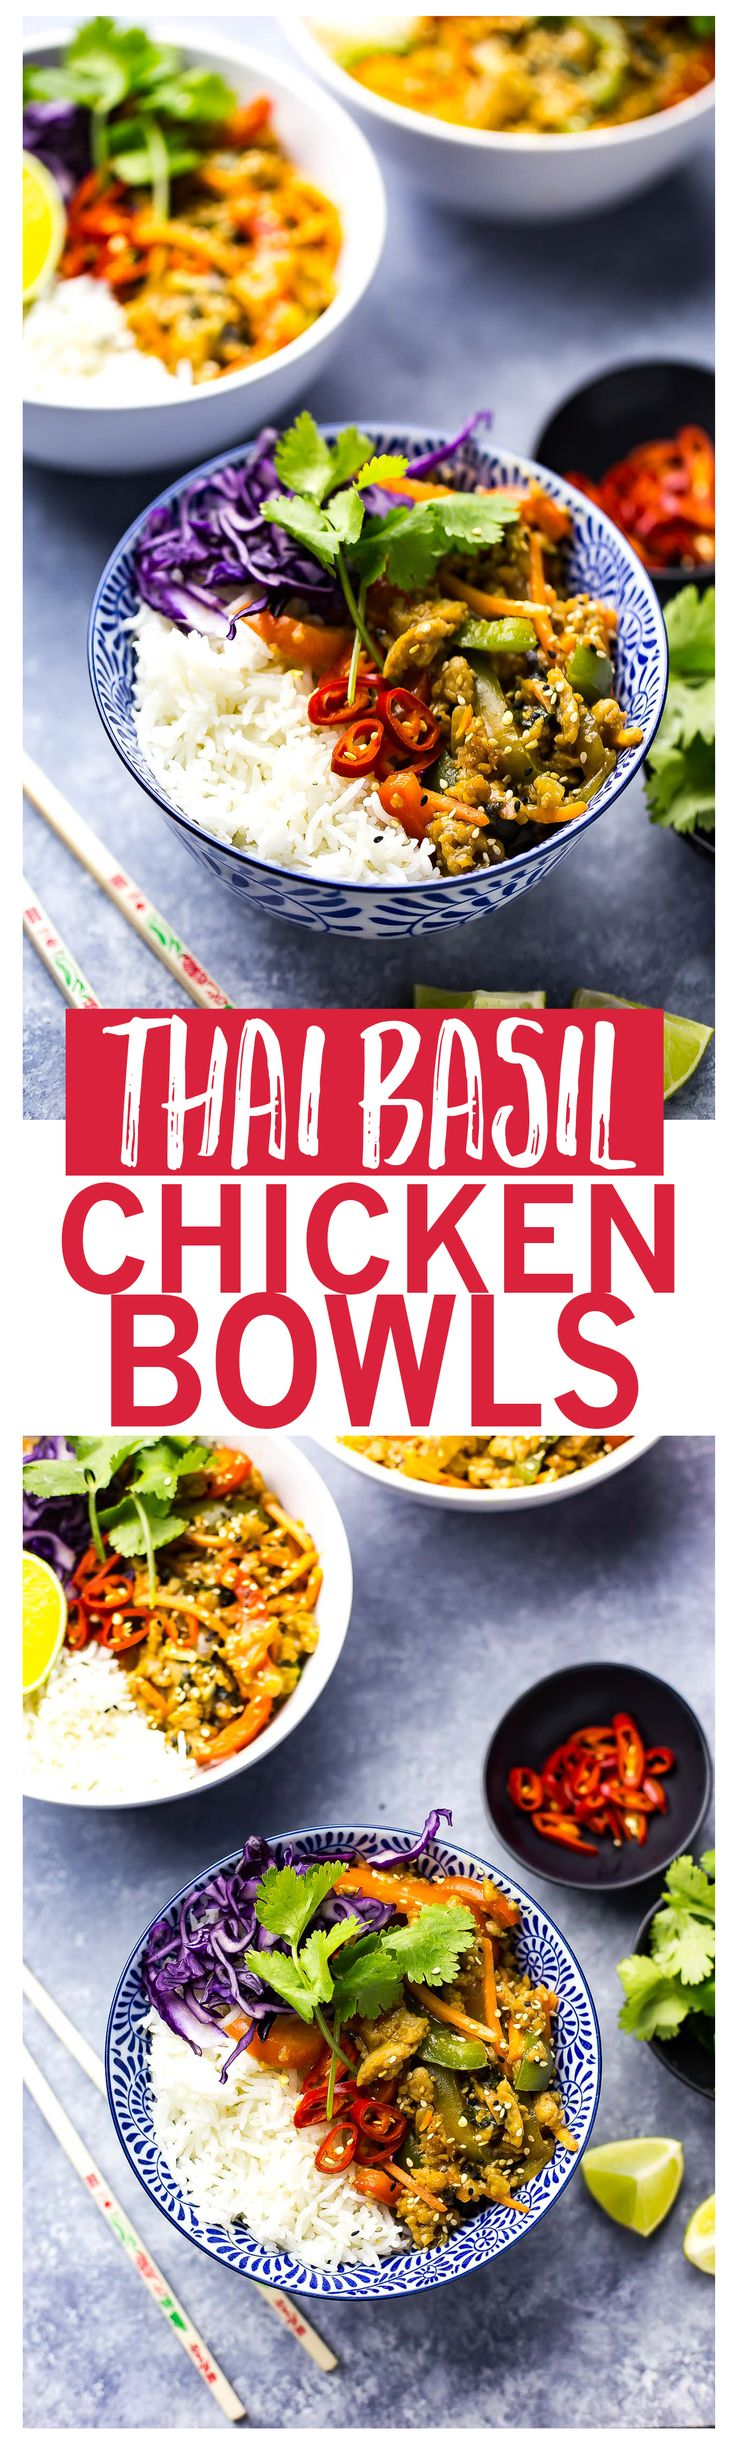 Thai Basil Chicken Bowls with Coconut Rice & veggies   Gluten free   20-minute meal